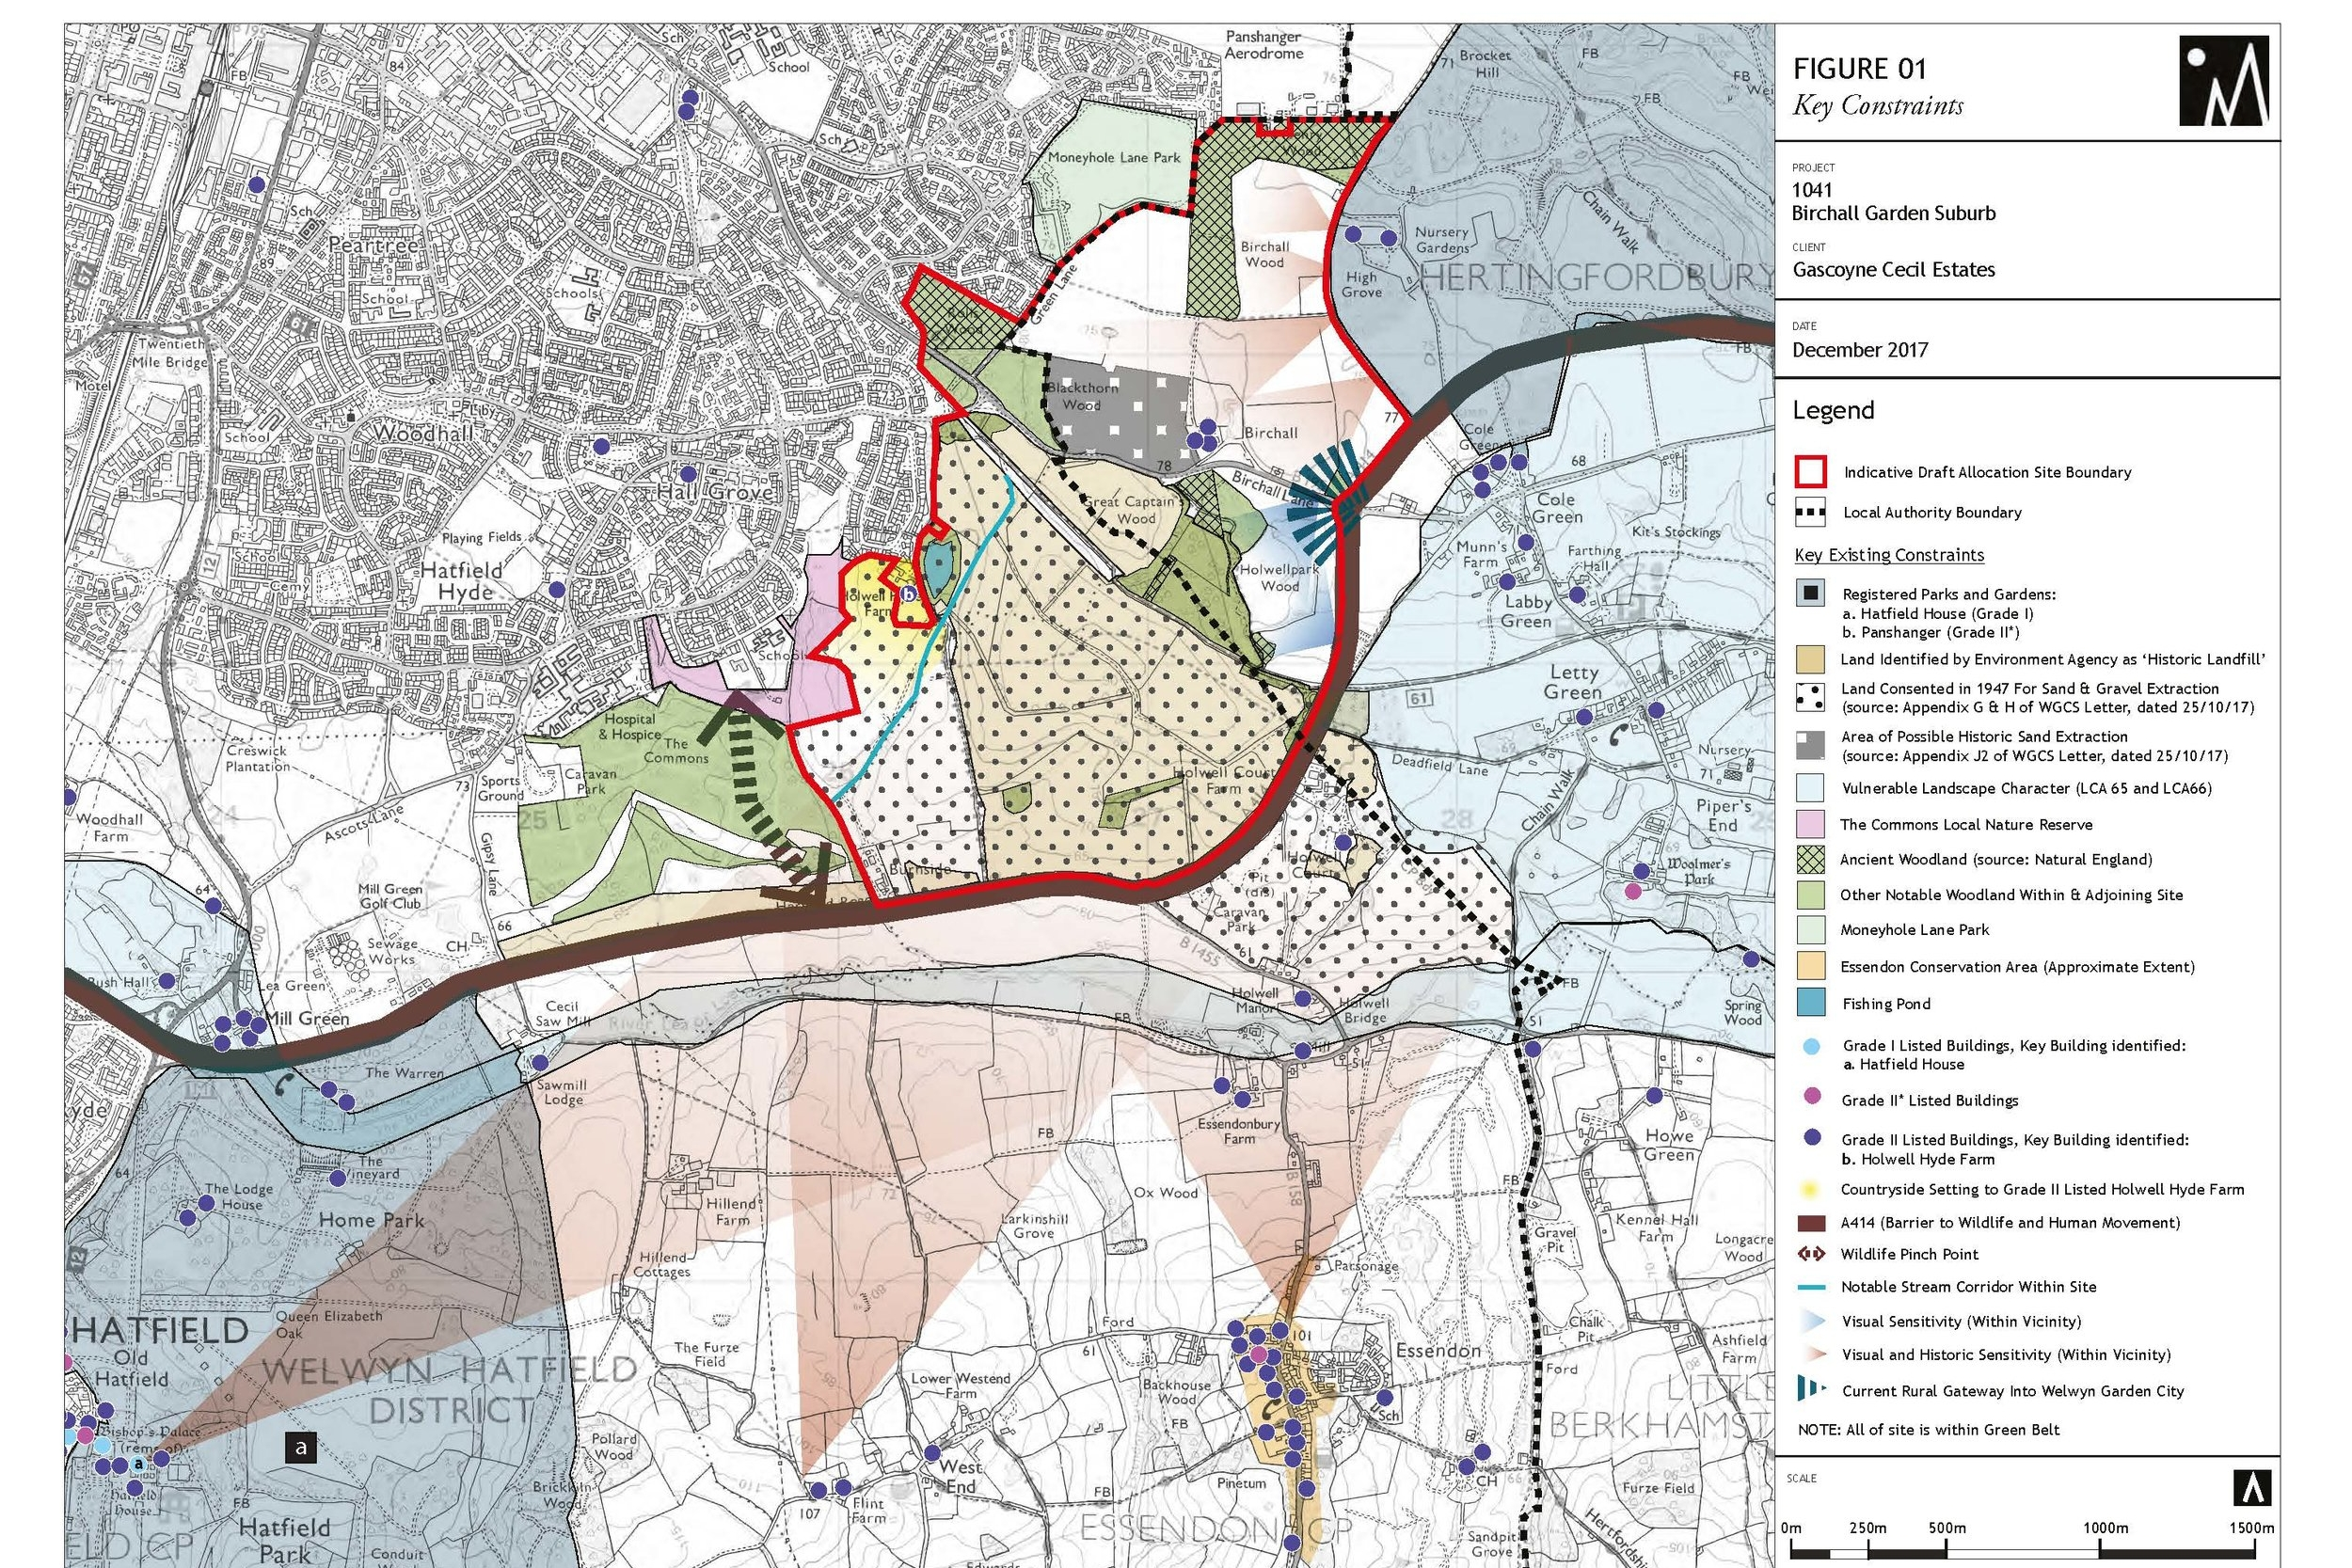 Local Plan Assessments - Many sites that are being promoted through the local plan process, particularly for residential development, are greenfield sites with landscape issues. A well-focused landscape assessment helps to identify how a site can be most appropriately developed and is essential to inform a successful indicative masterplan.Where landscape or Green Belt studies have been undertaken by a Local Planning Authority it is important that these are carefully analysed as the methodologies are widely varying.Learn more in Projects